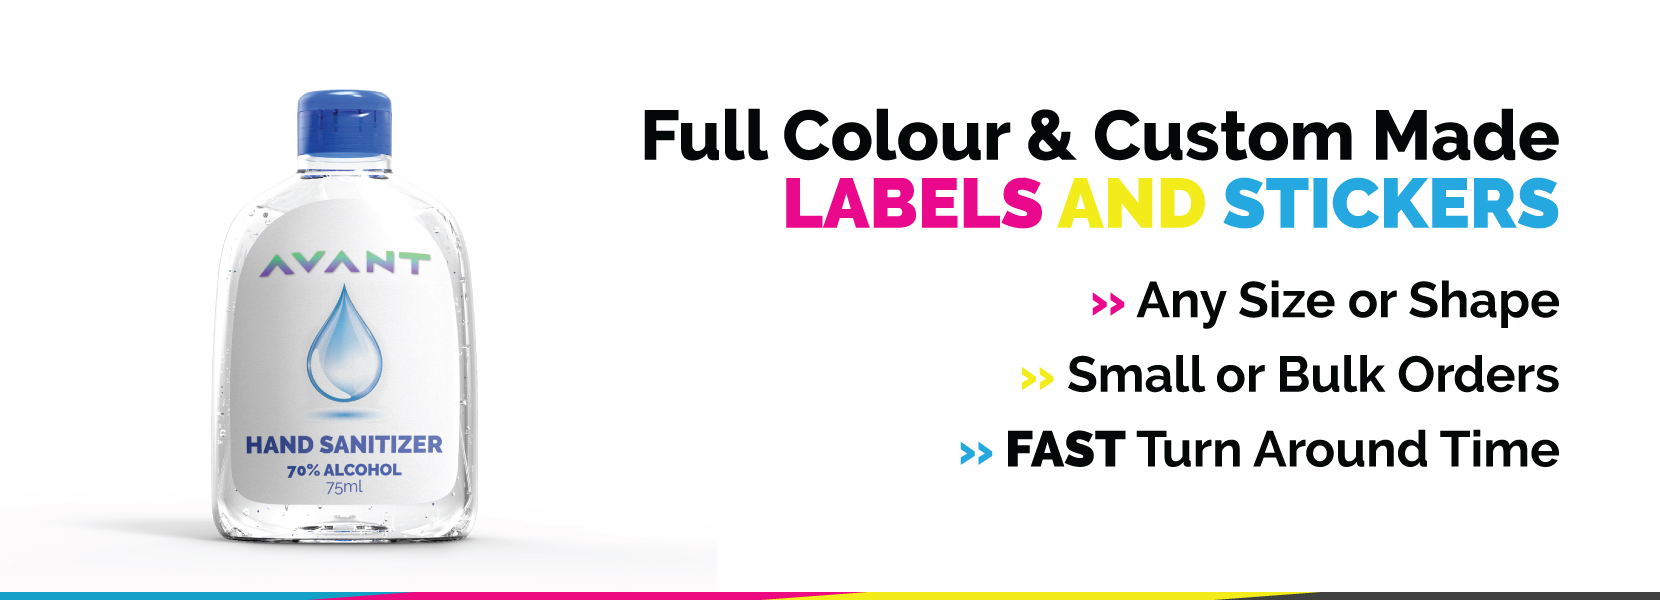 Full Colour Labels and Stickers